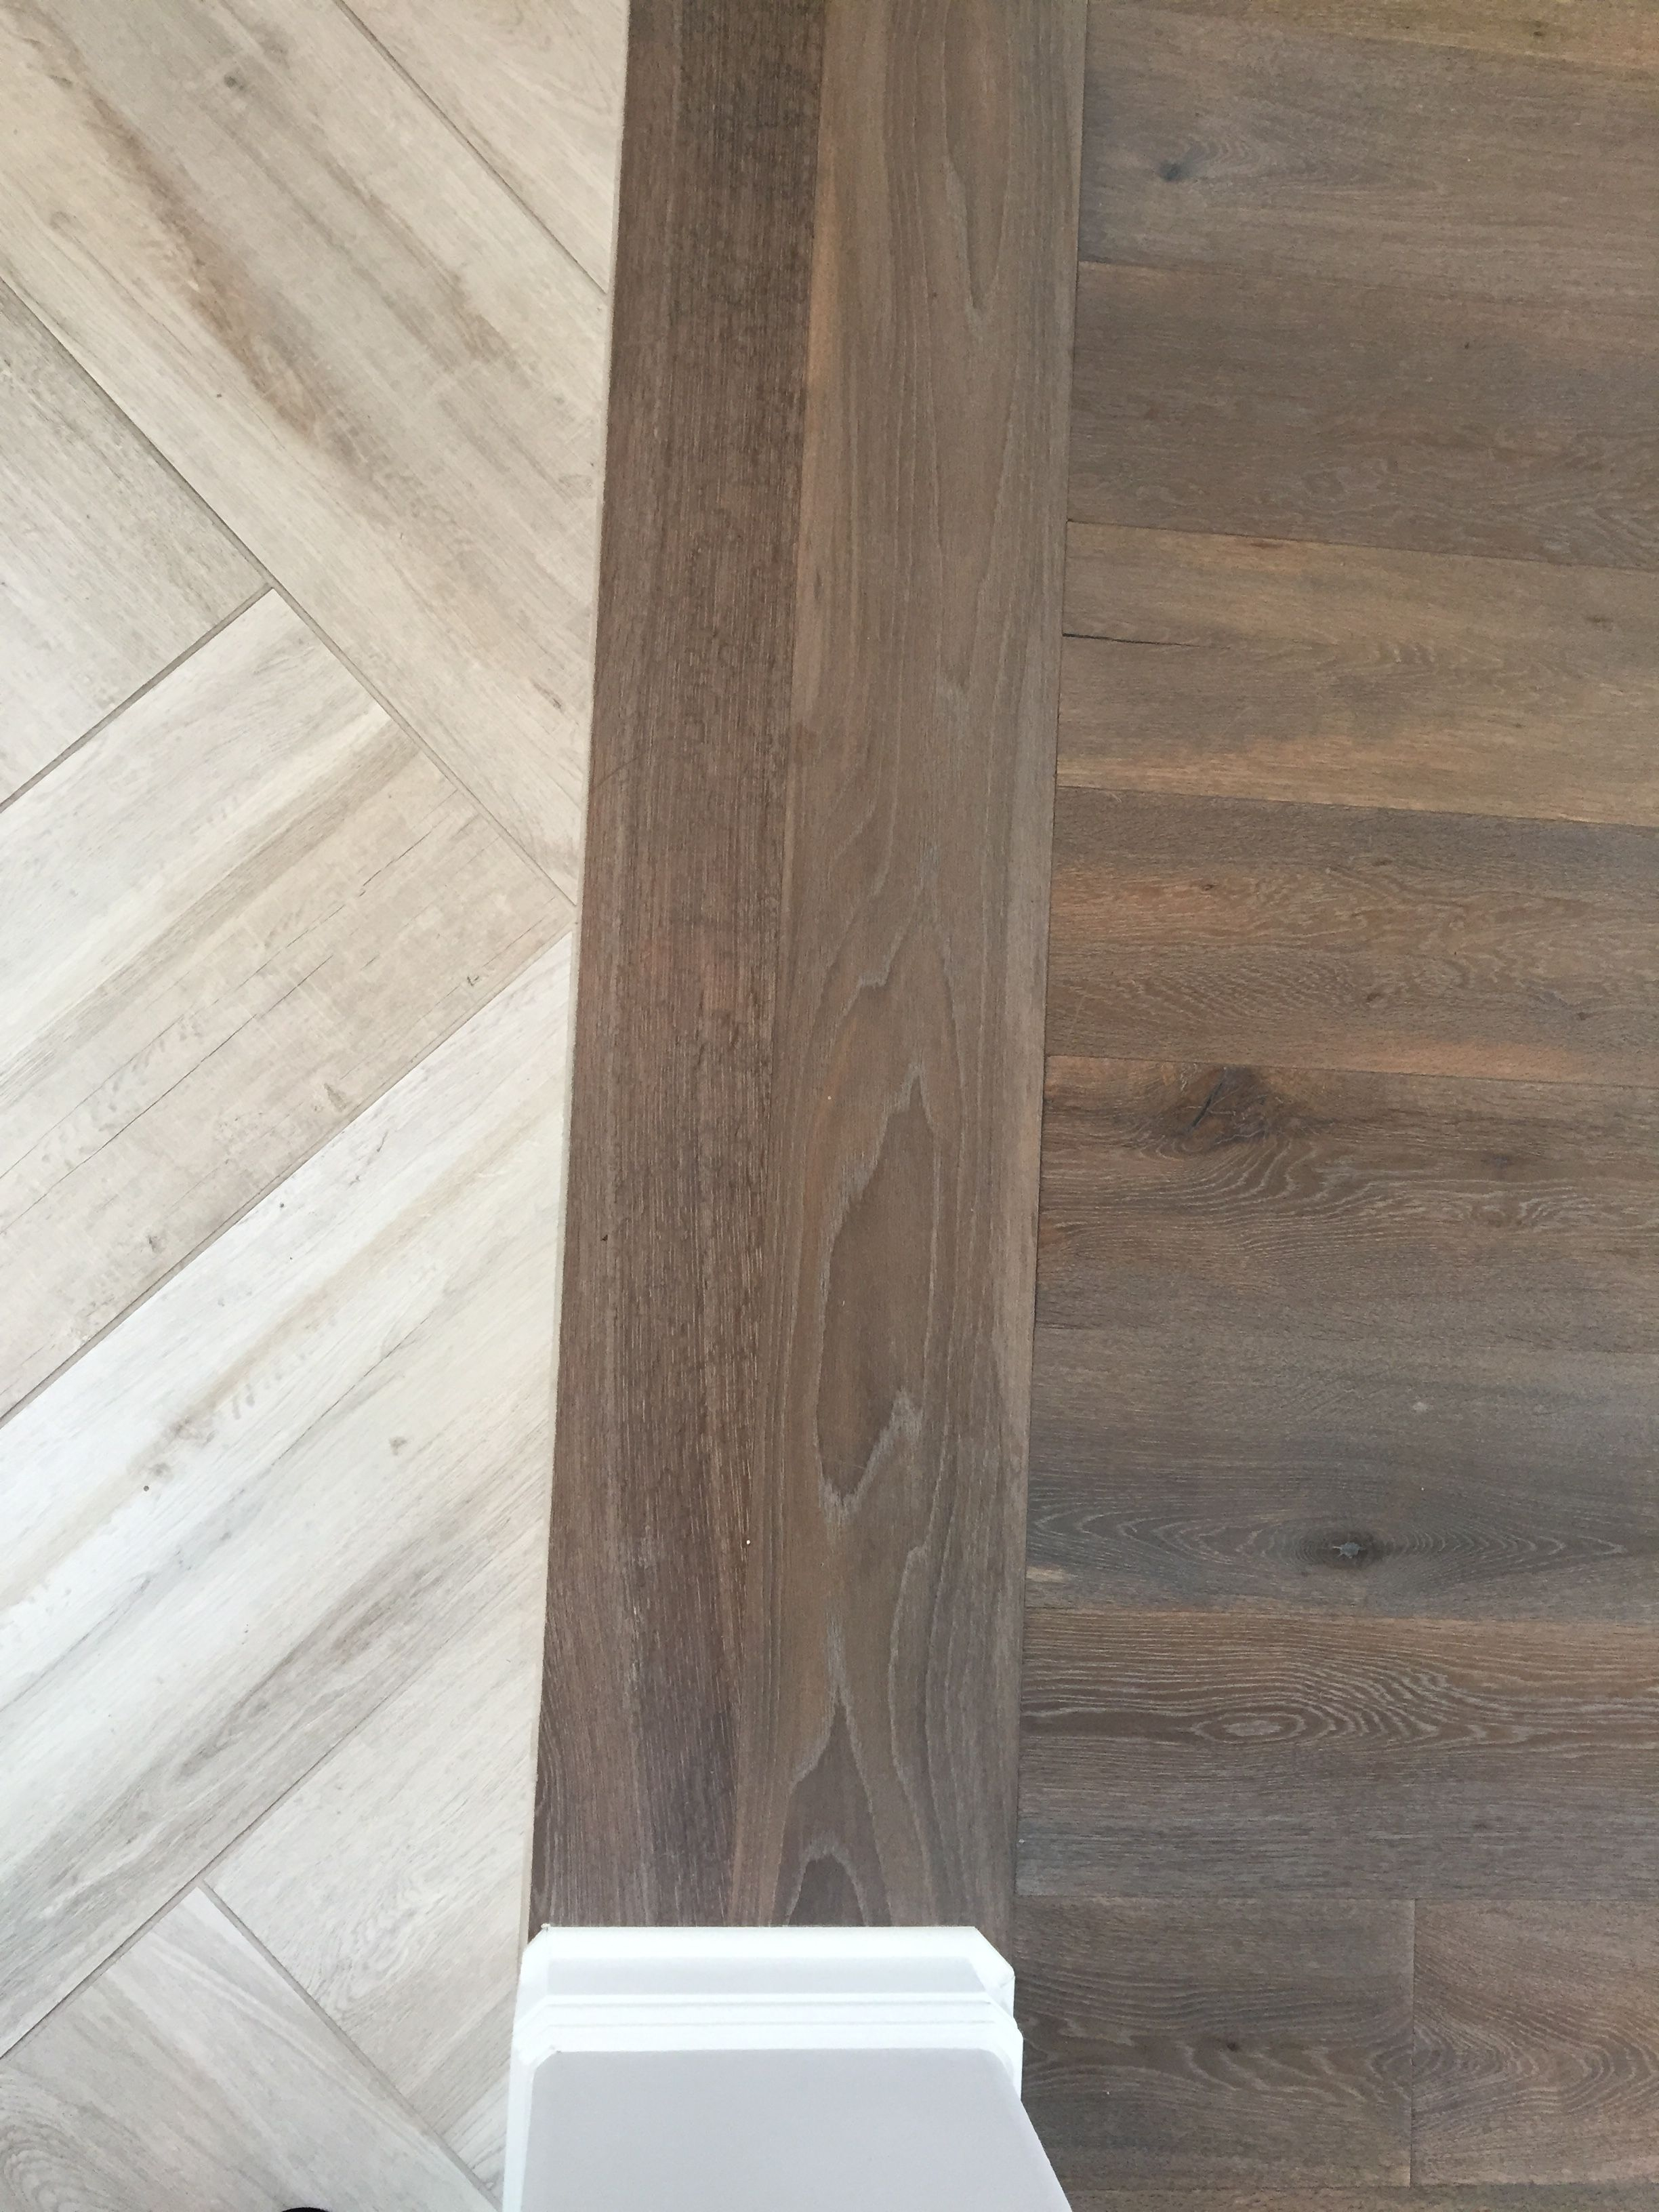 Floor Transition Laminate To Herringbone Tile Pattern throughout size 2448 X 3264